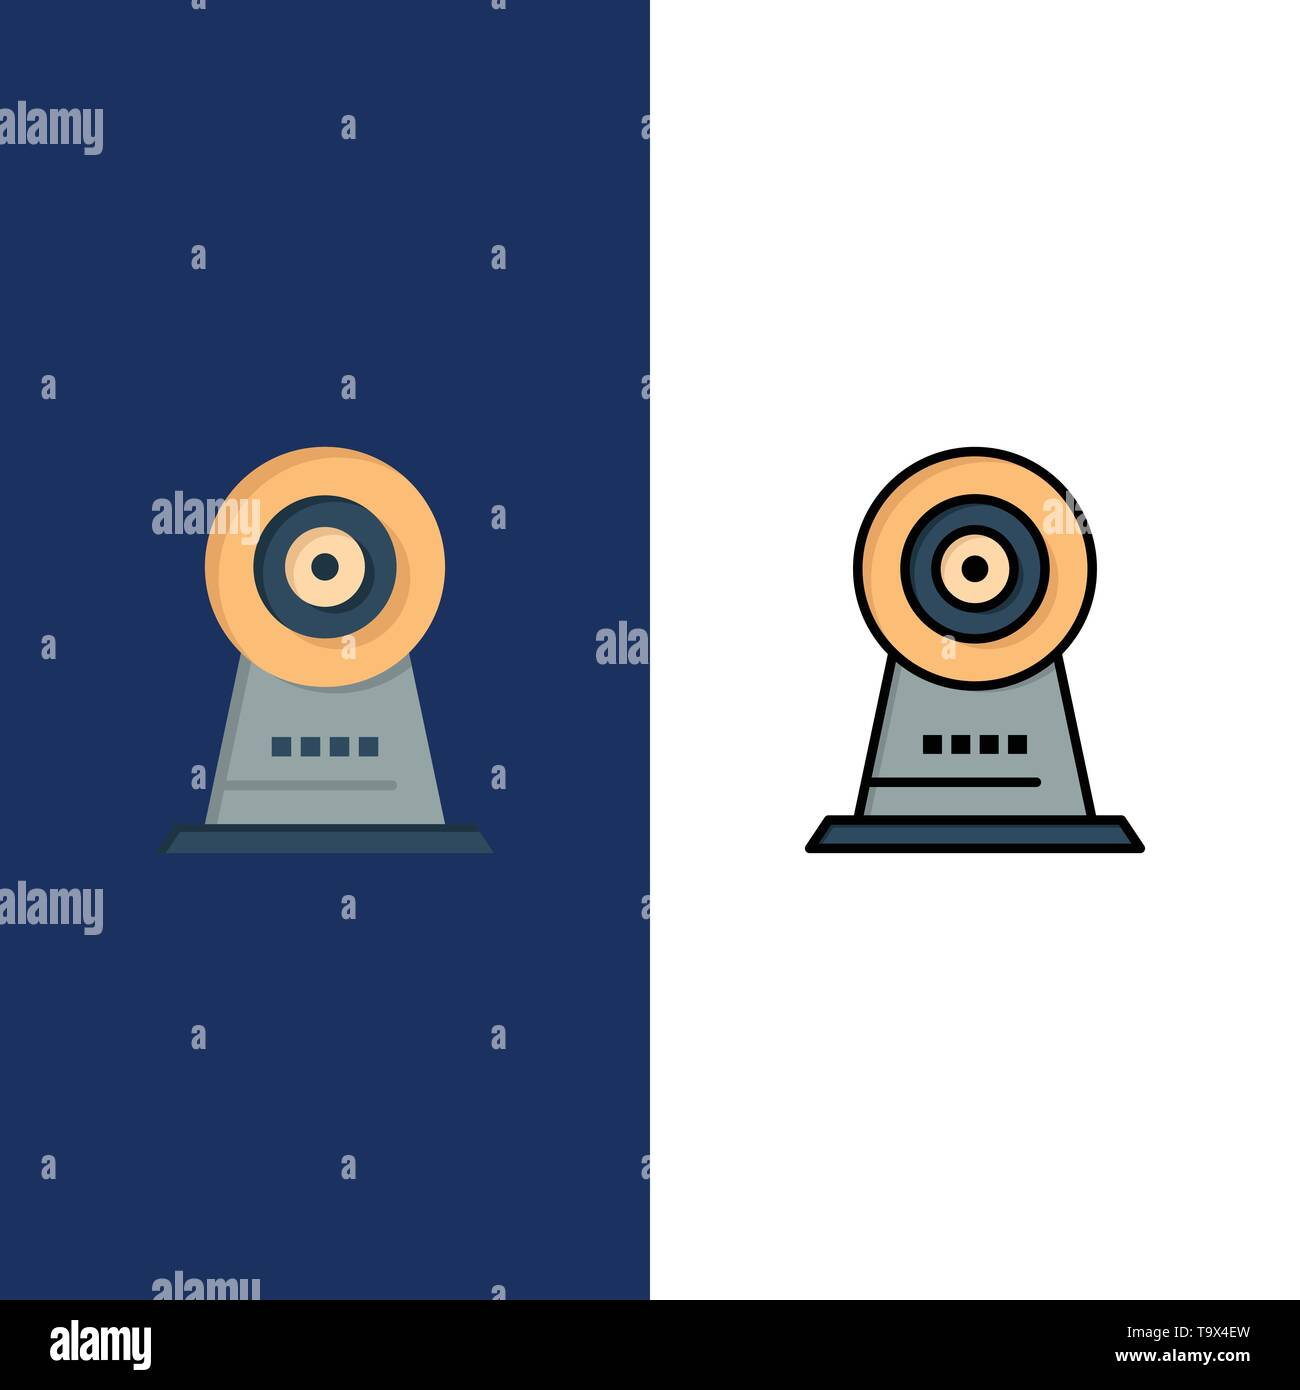 Camera, Webcam, Security, Hotel  Icons. Flat and Line Filled Icon Set Vector Blue Background - Stock Image